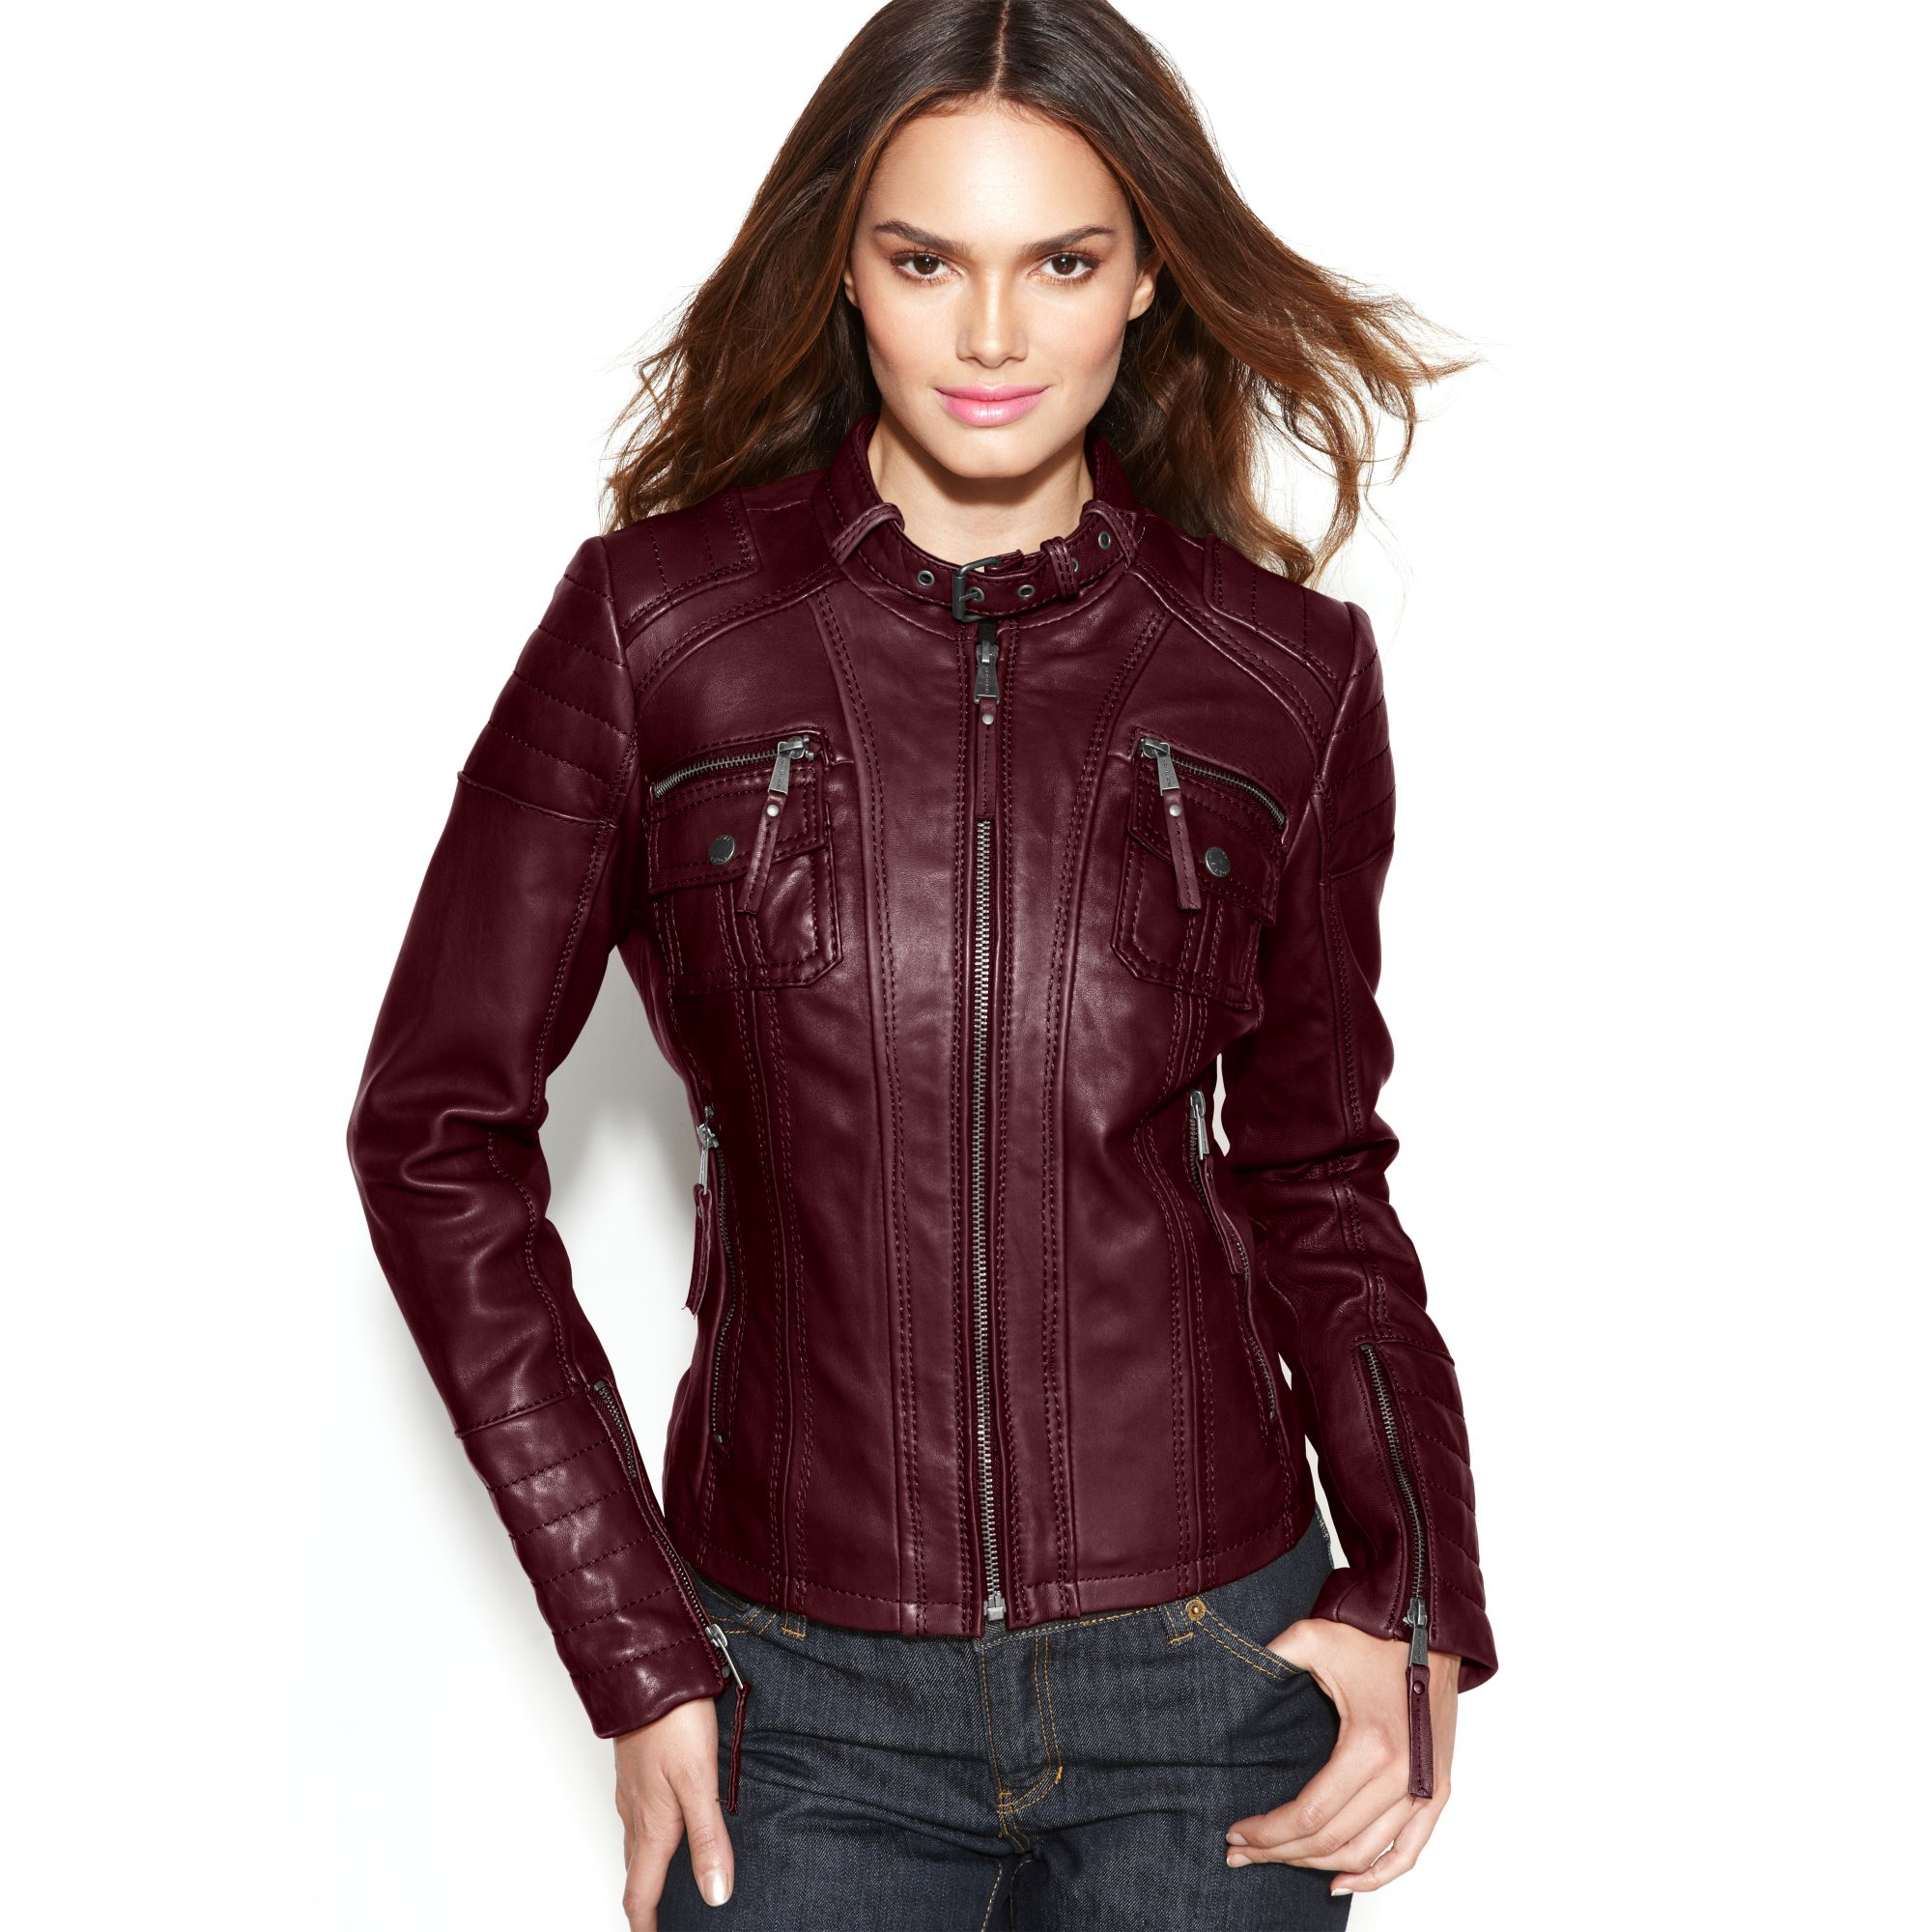 michael kors leather bucklecollar motorcycle jacket in red burgundy